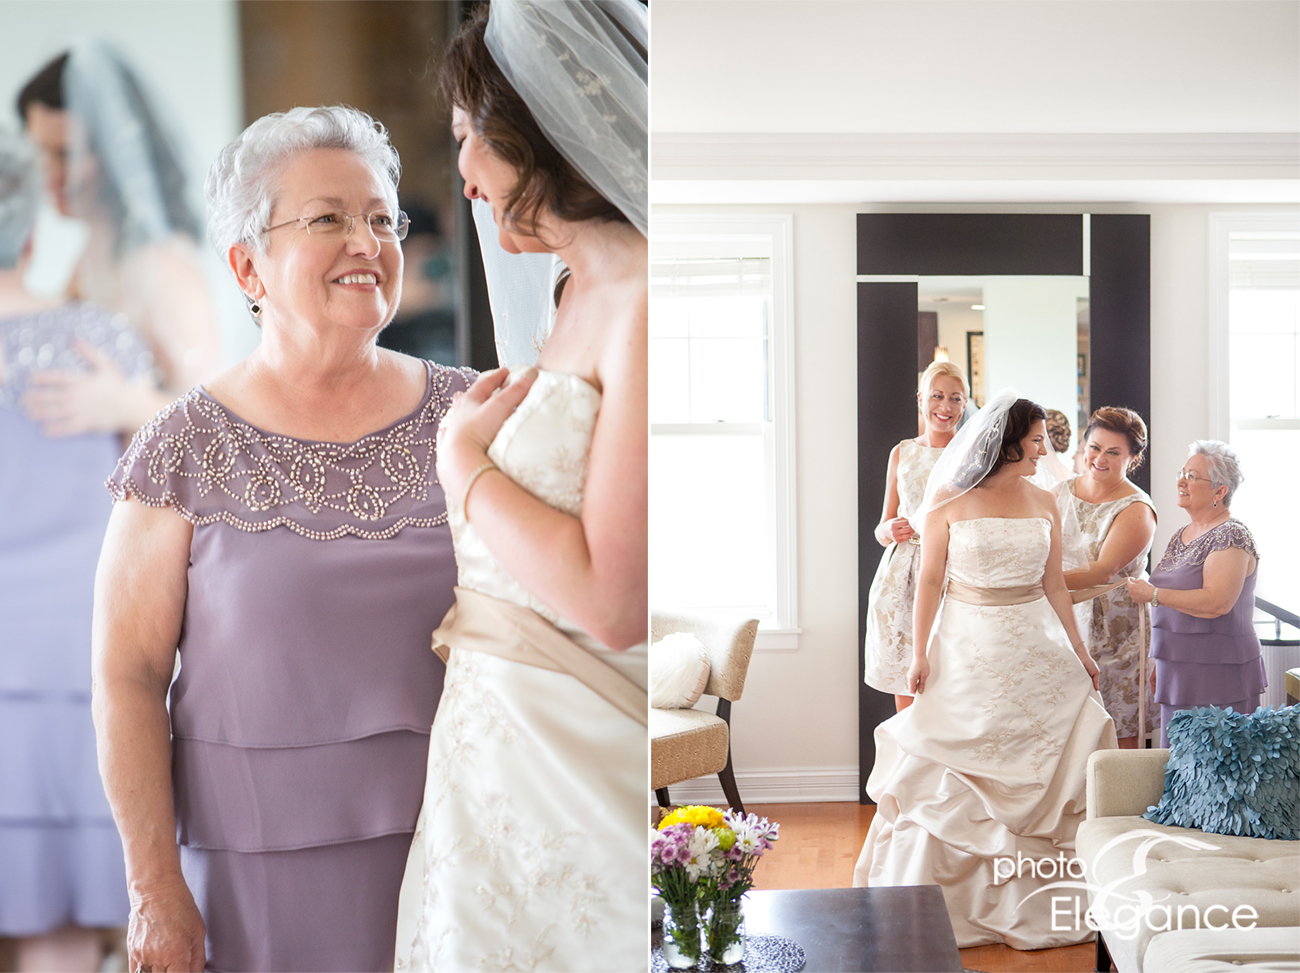 Helena + Joe Wedding | Photo Elegance blog